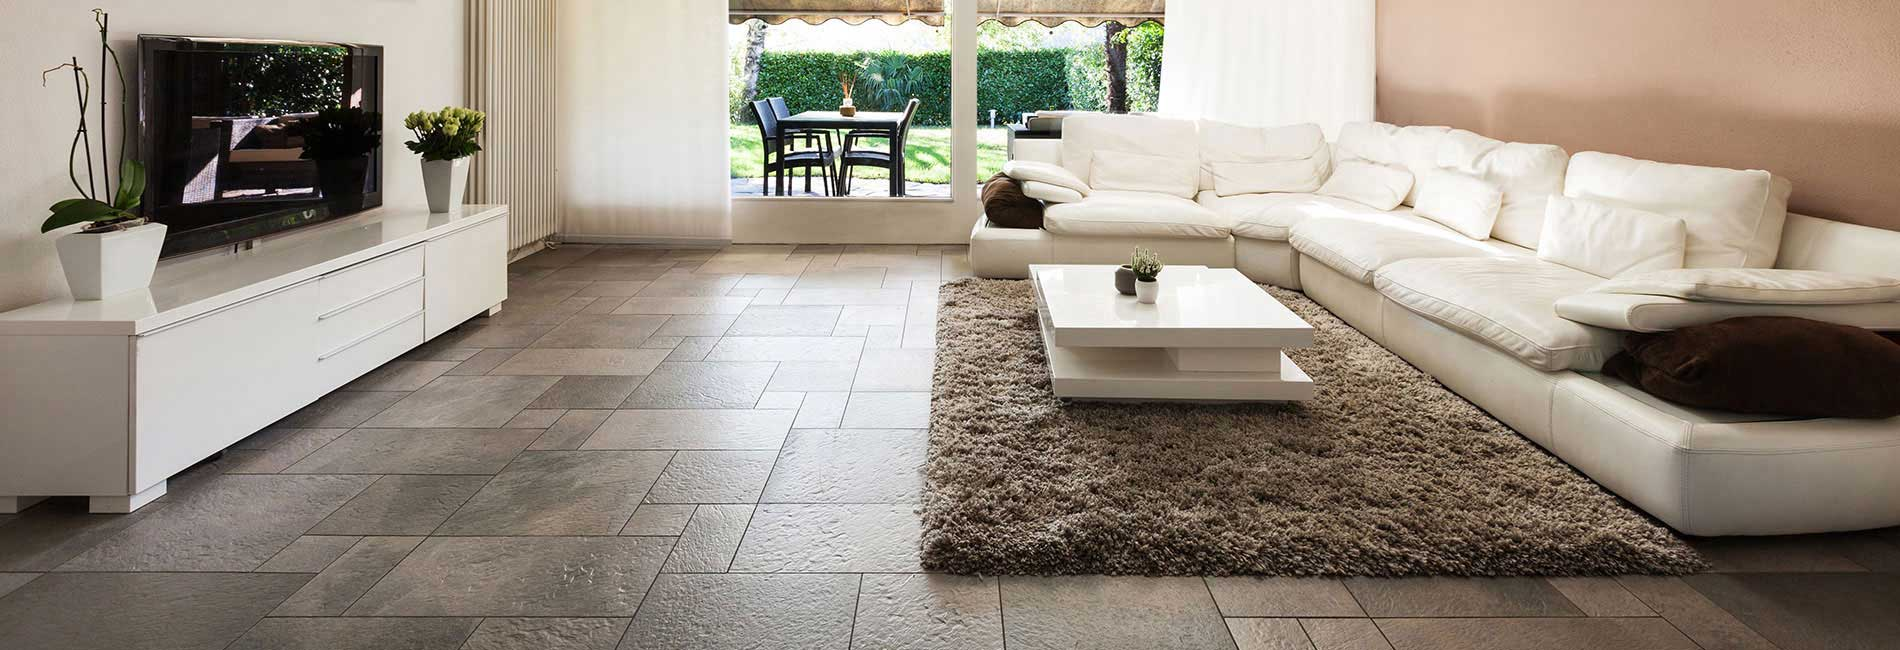 Living Room with Vitrified Floor Tiles